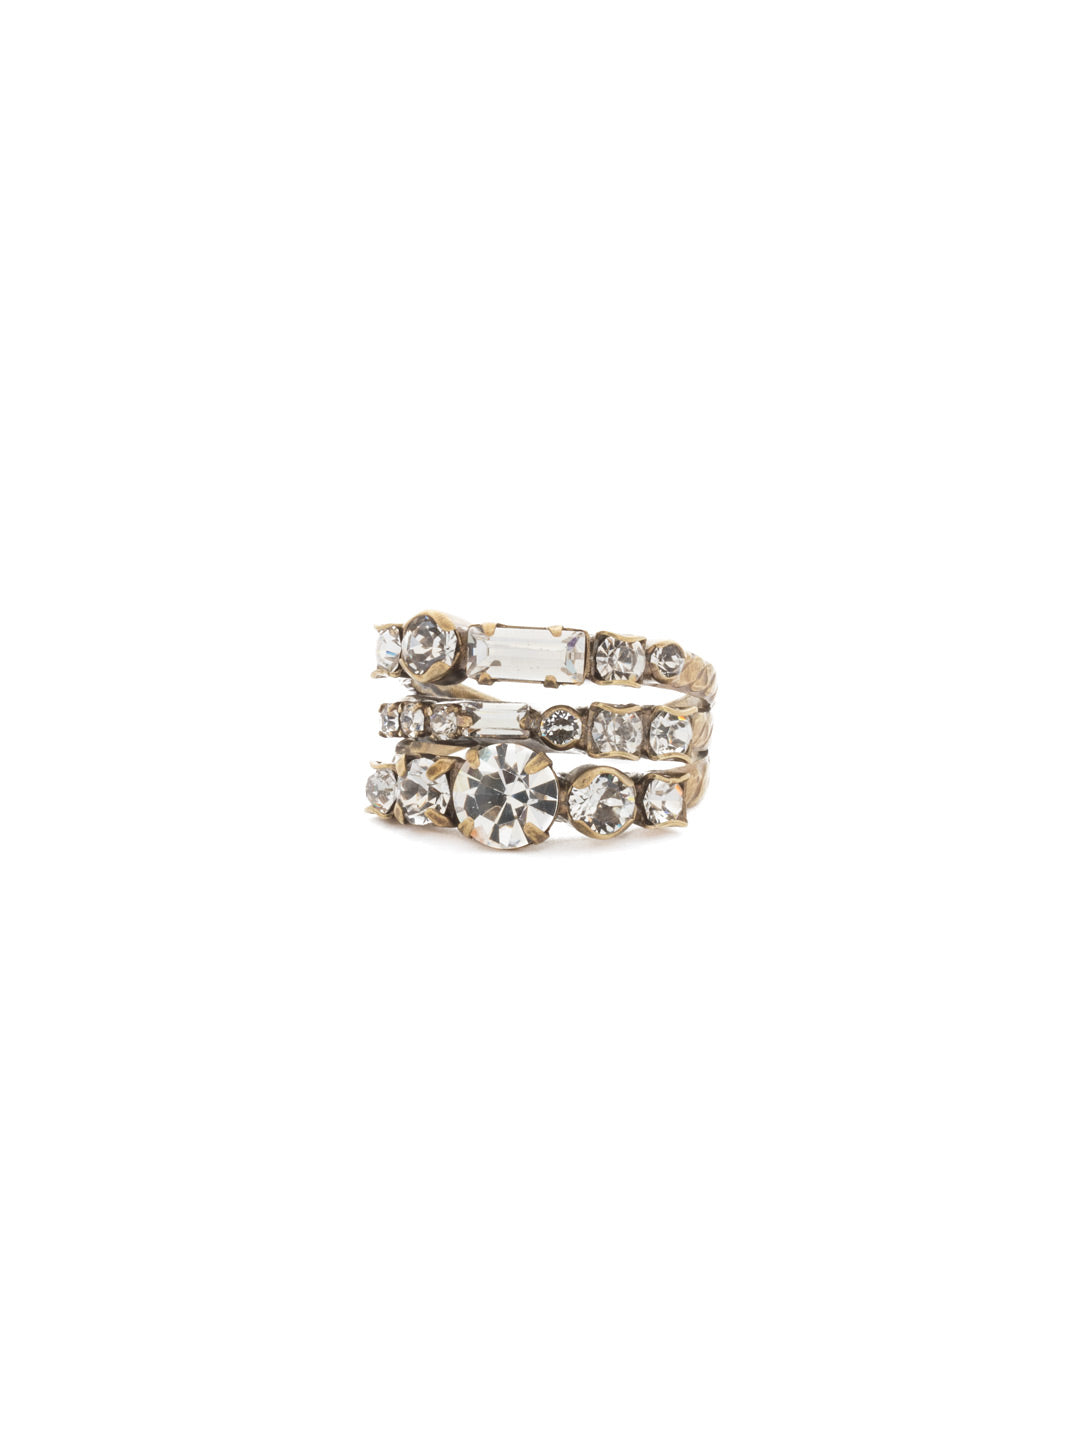 Triple Threat Stacked Ring - RDK23AGCRY